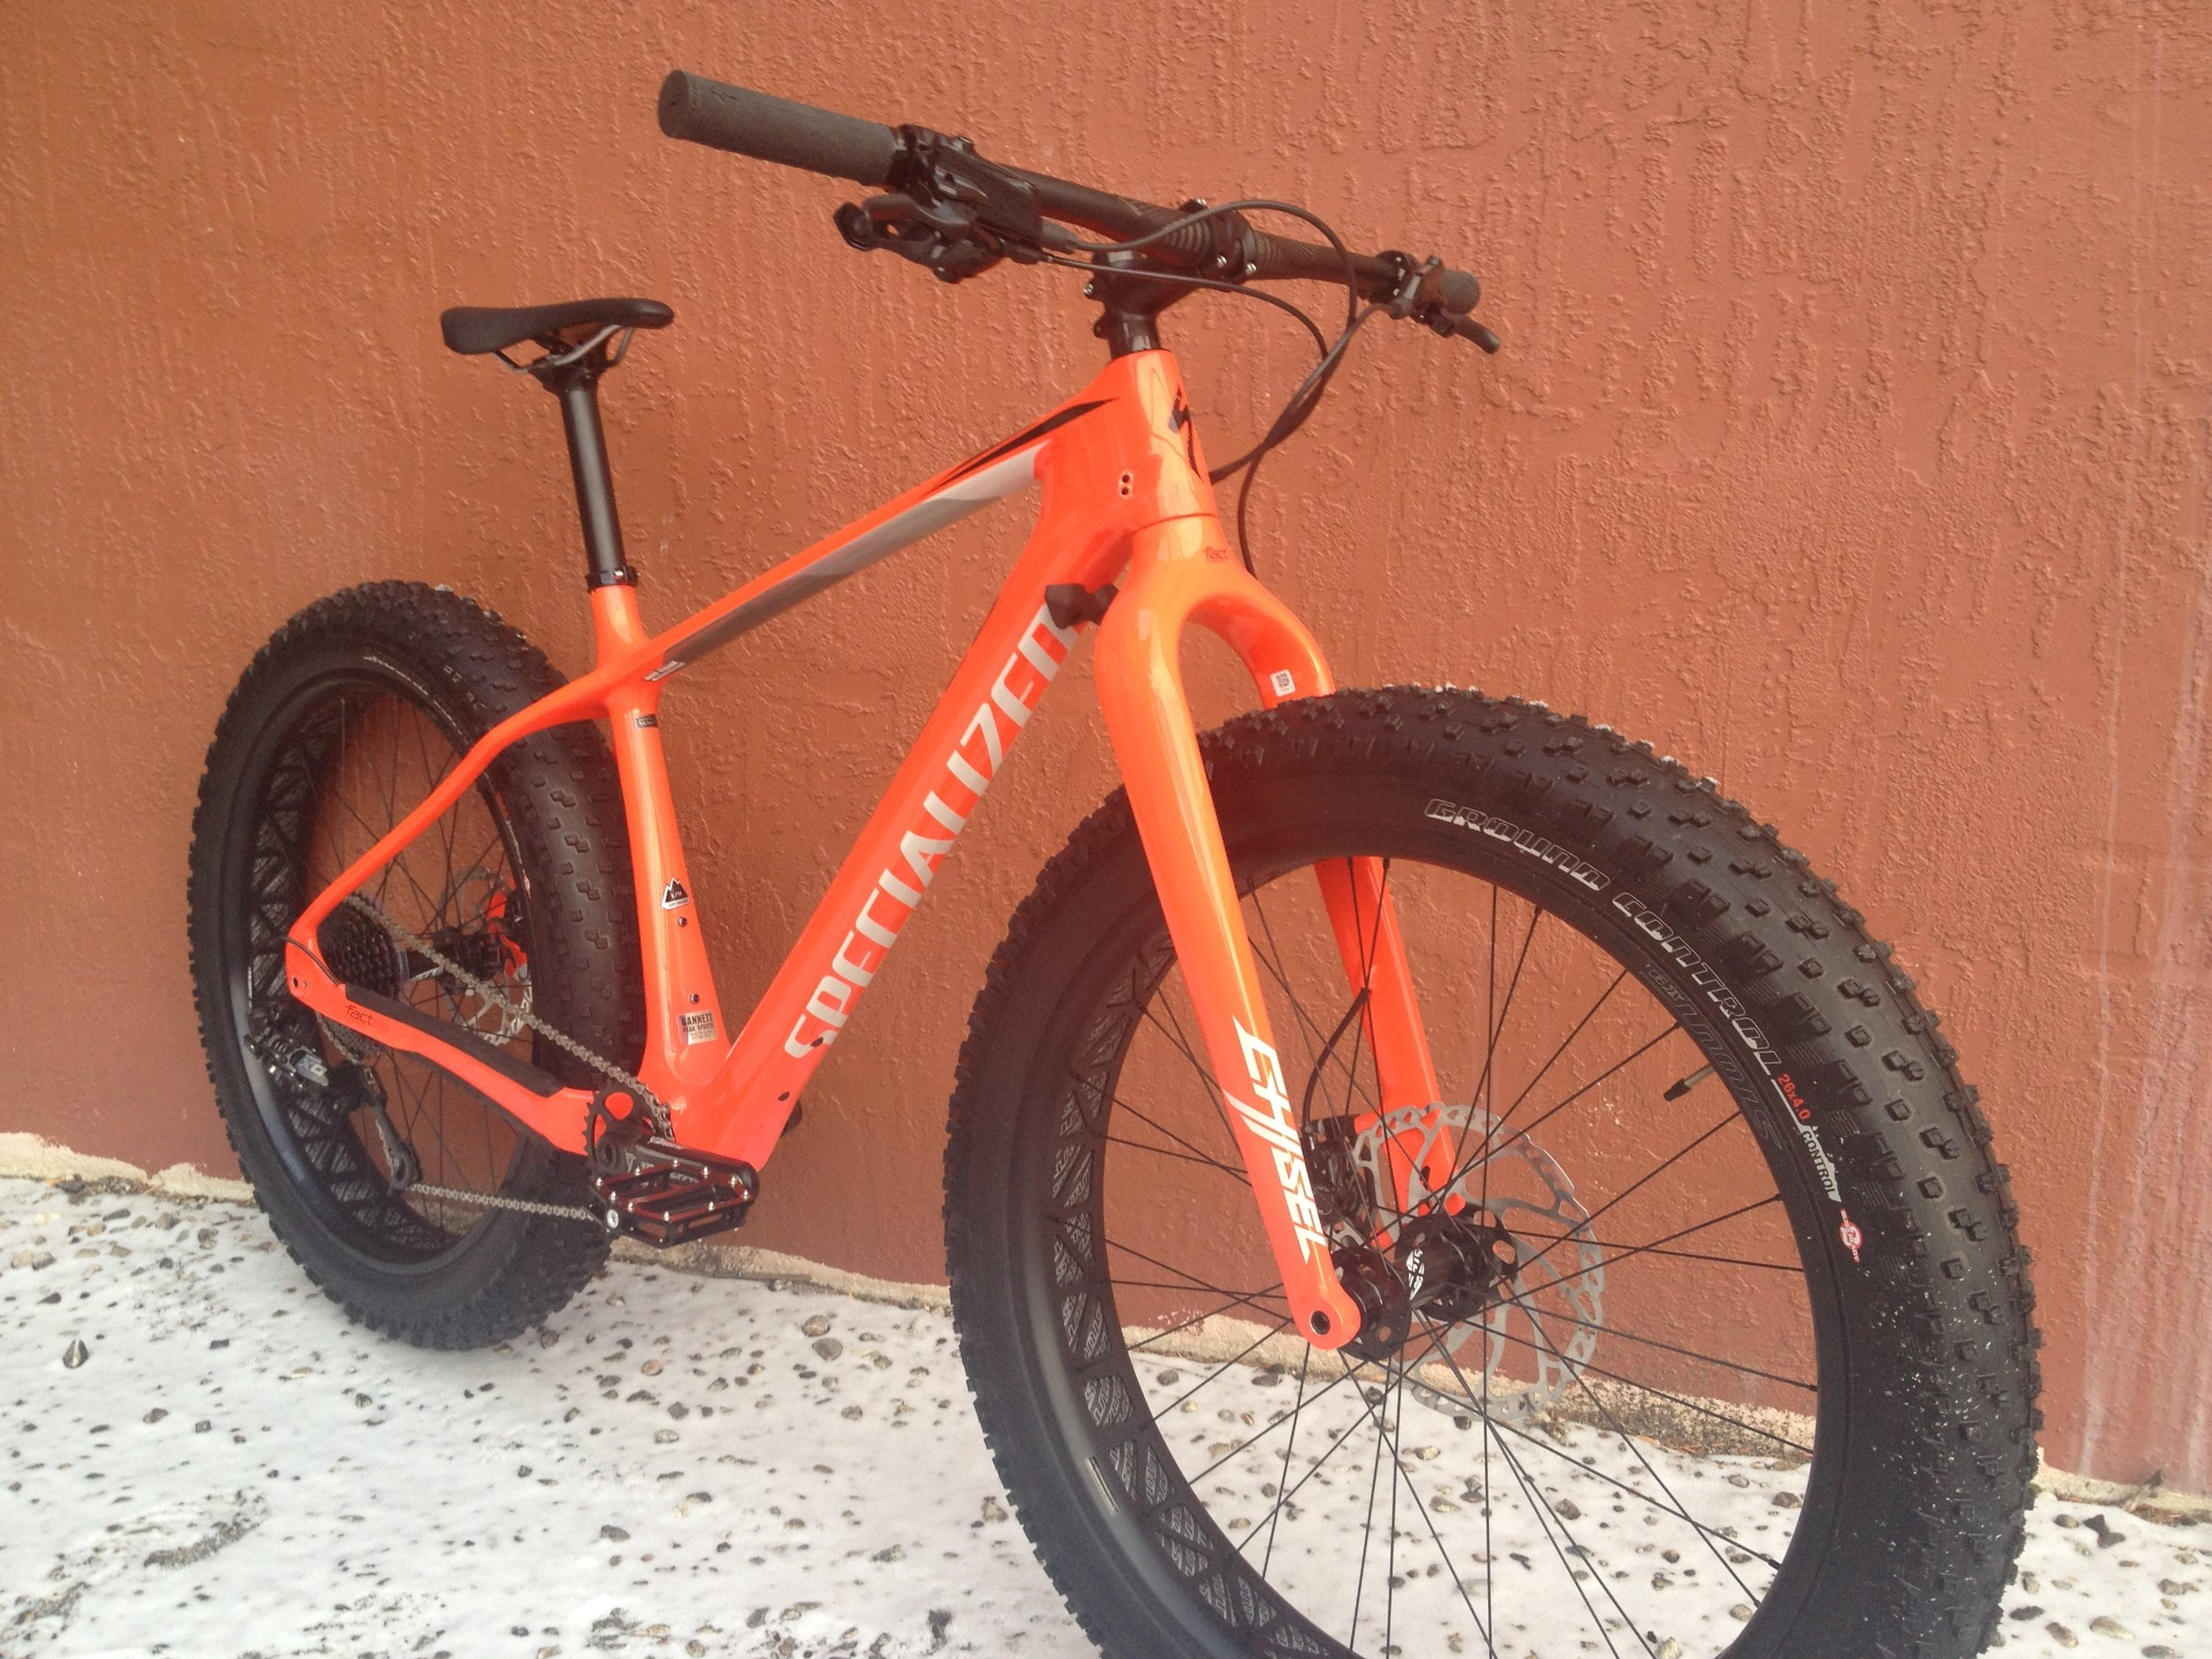 "SPECIALIZED CARBON FATBOY    Type:  Fat Bike  | Frame Size:  Inline/Unisex Large  | Wheel Size:  26"" x 4.8""  